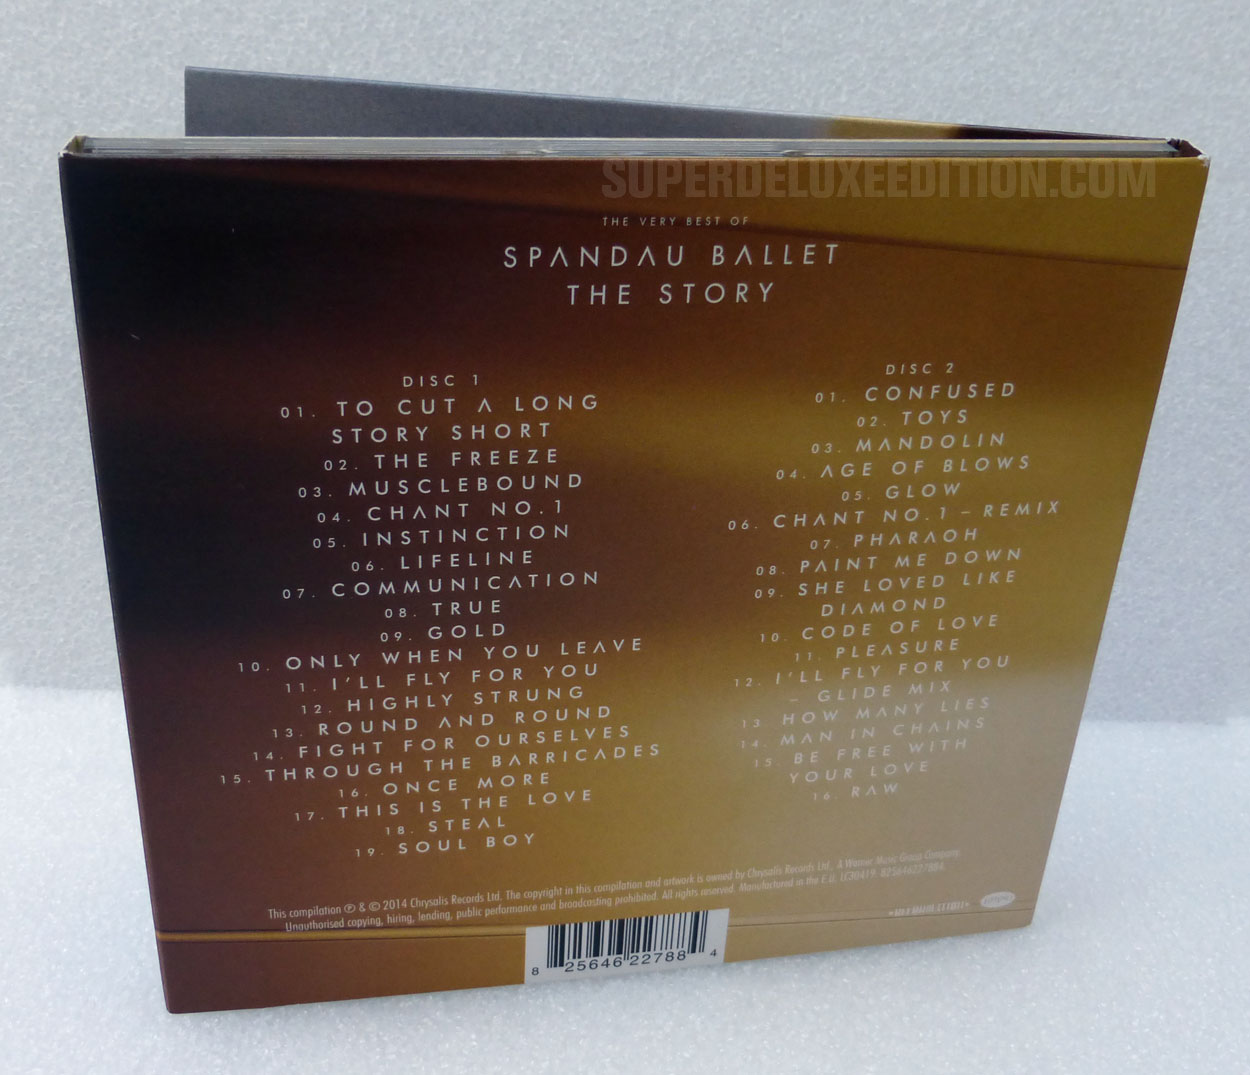 Review: The Best of Spandau Ballet: The Story / 2CD deluxe